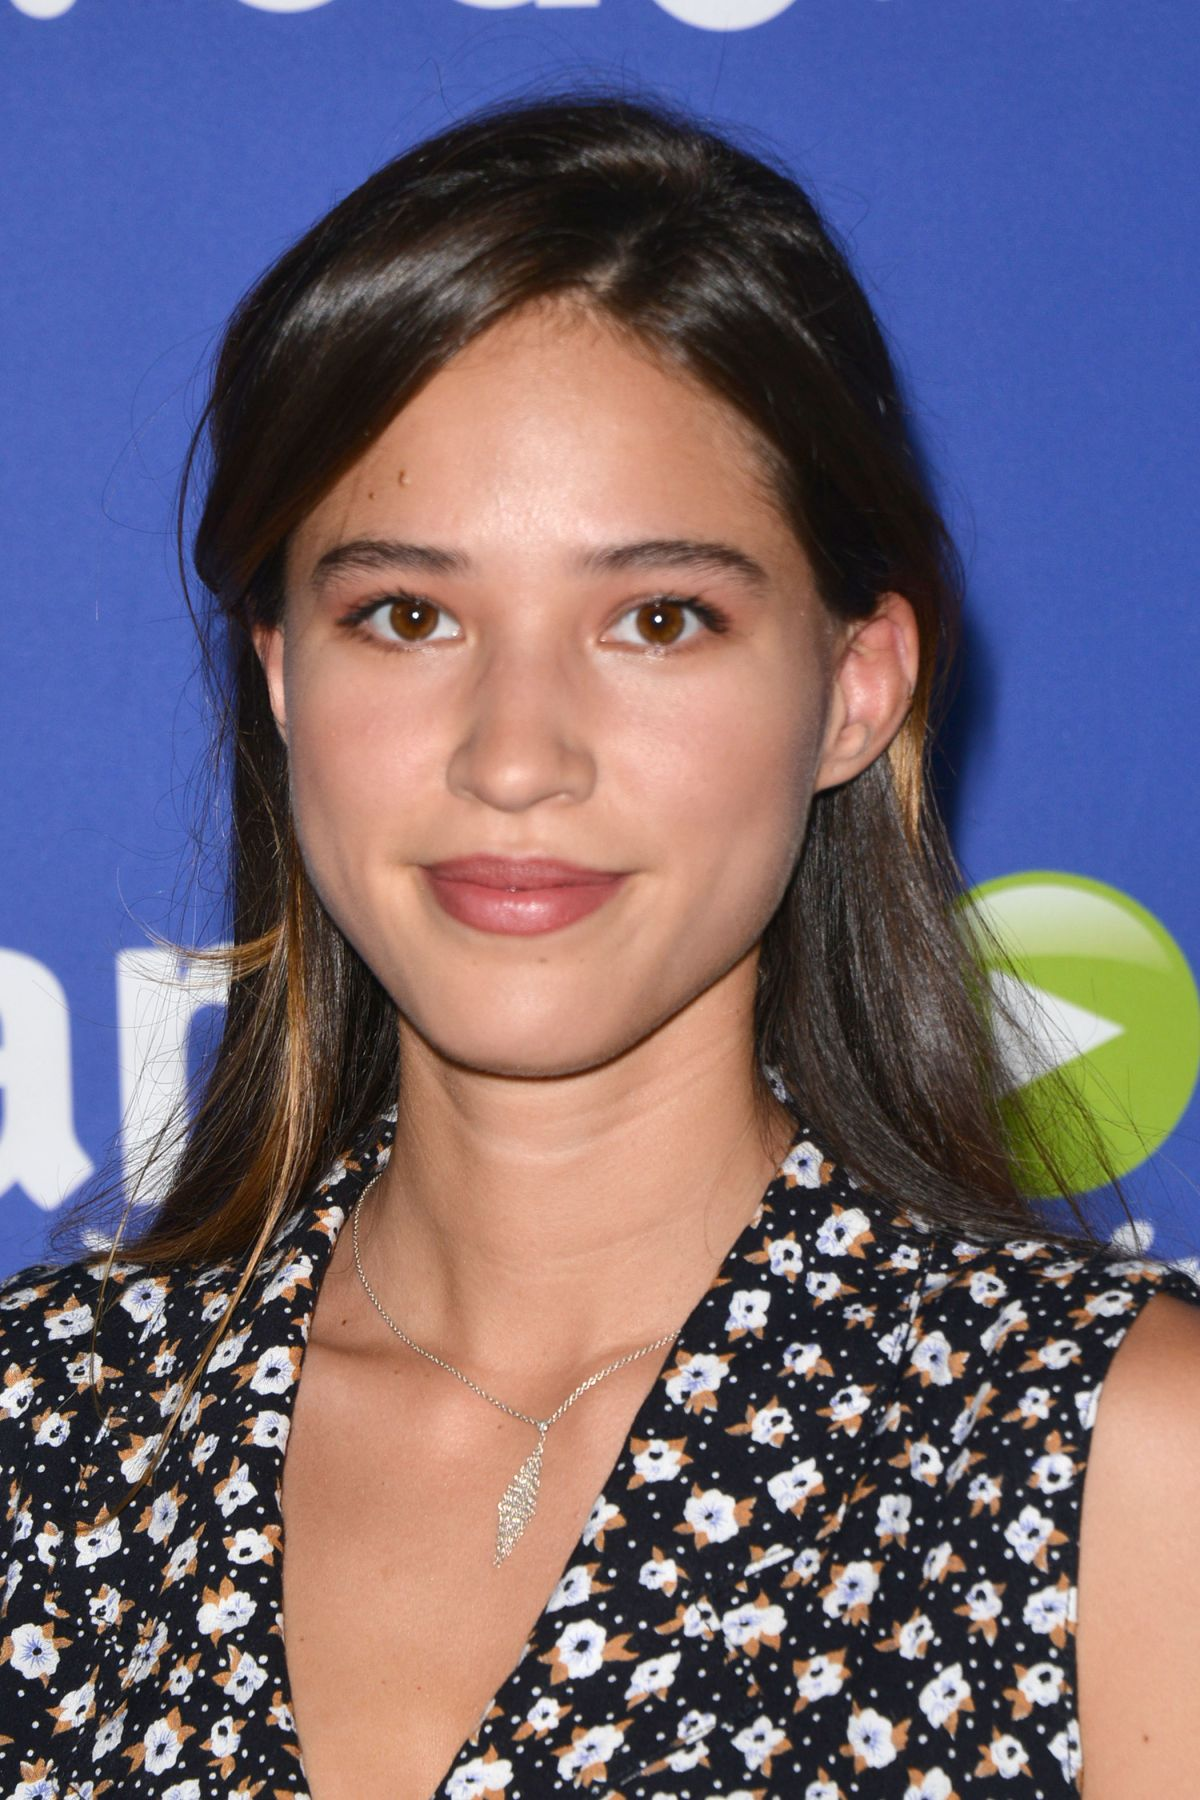 KELSEY CHOW at Just Jared Fall Fun Day in Los Angeles 10/24/2015